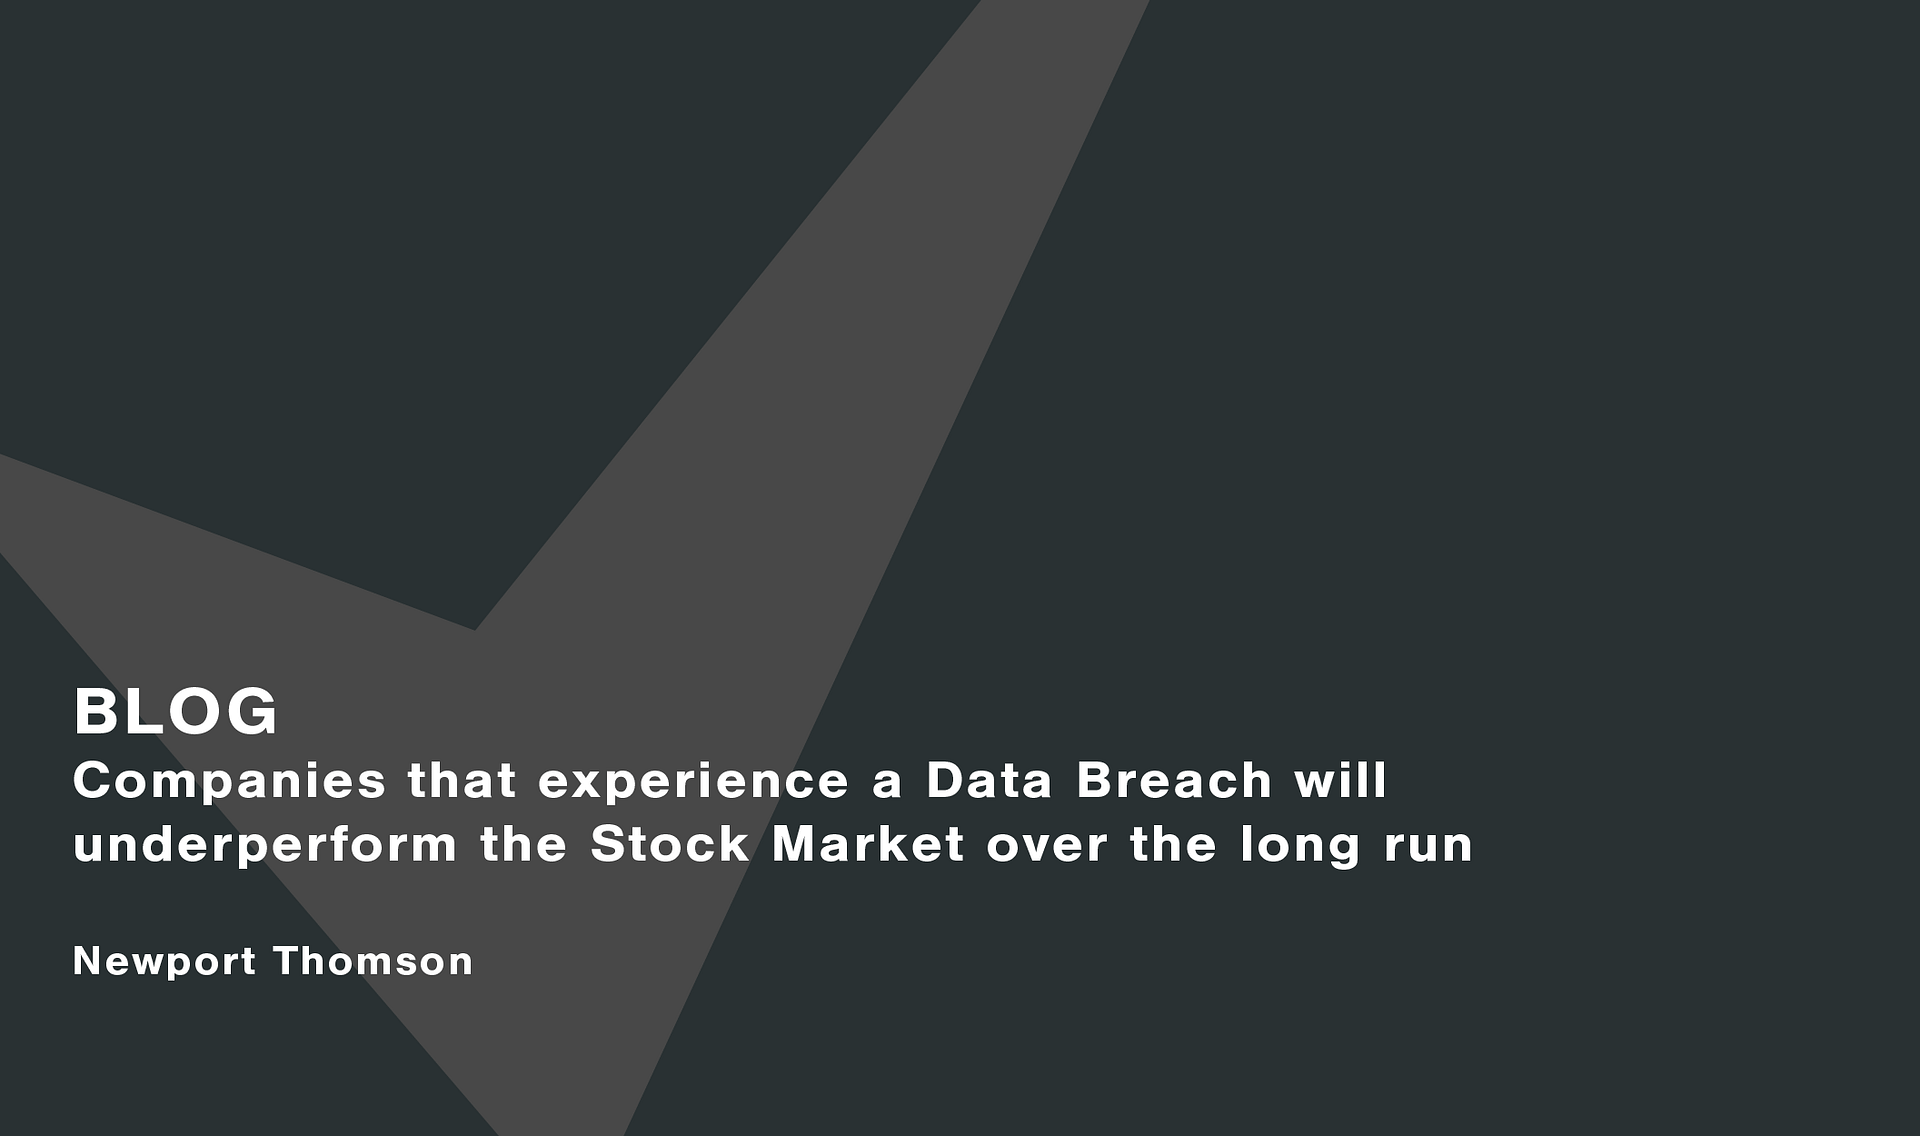 Companies that experience a Data Breach will underperform the Stock Market over the long run Cassie personal information & consent management